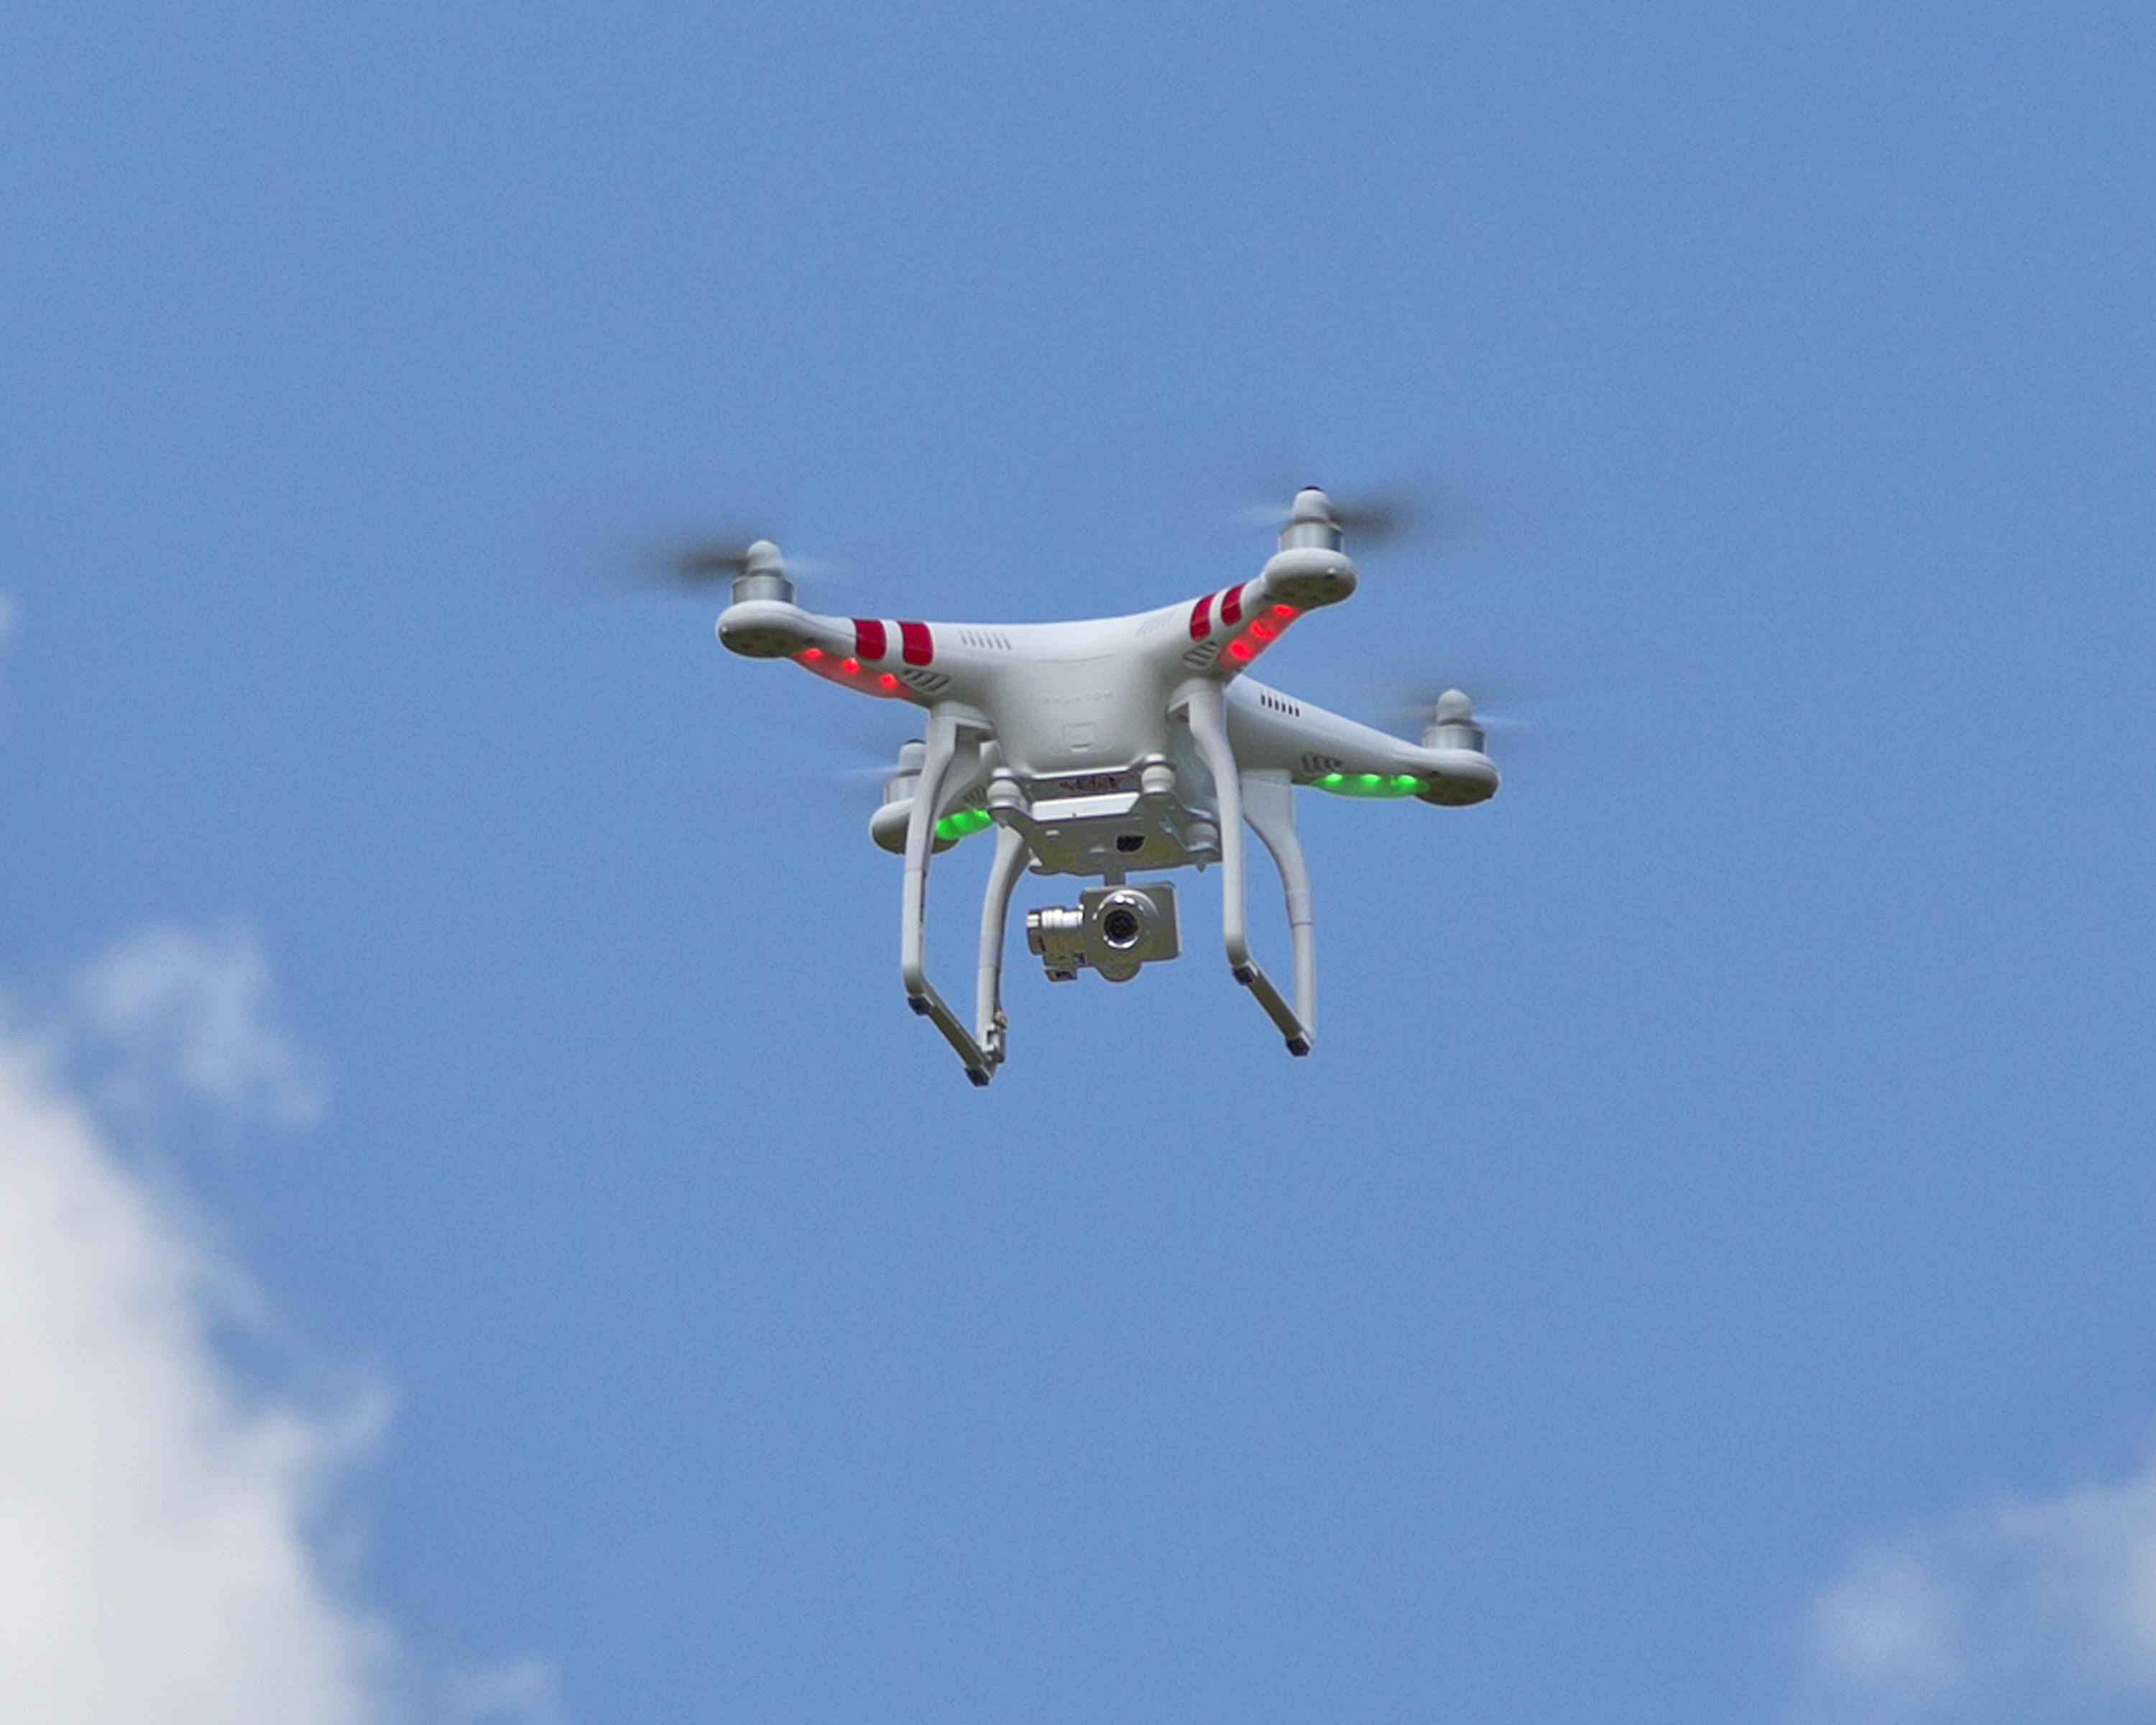 High Flyer? DJI Phantom 2 Vision+ Drone Review: Digital Photography